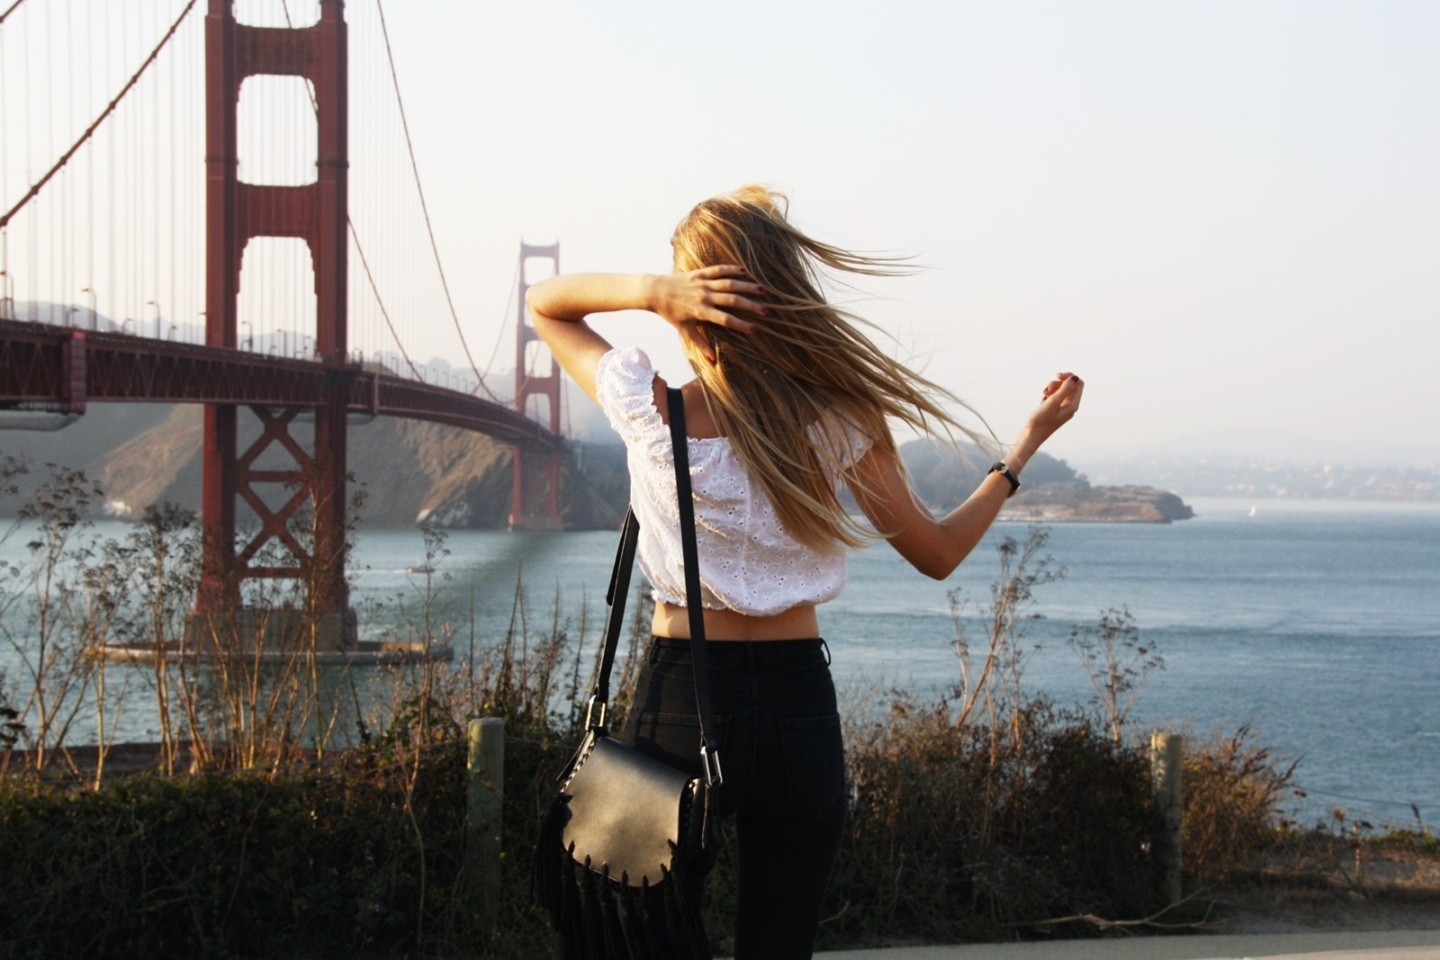 2 Tage in San Francisco: Meine Tipps & Highlights